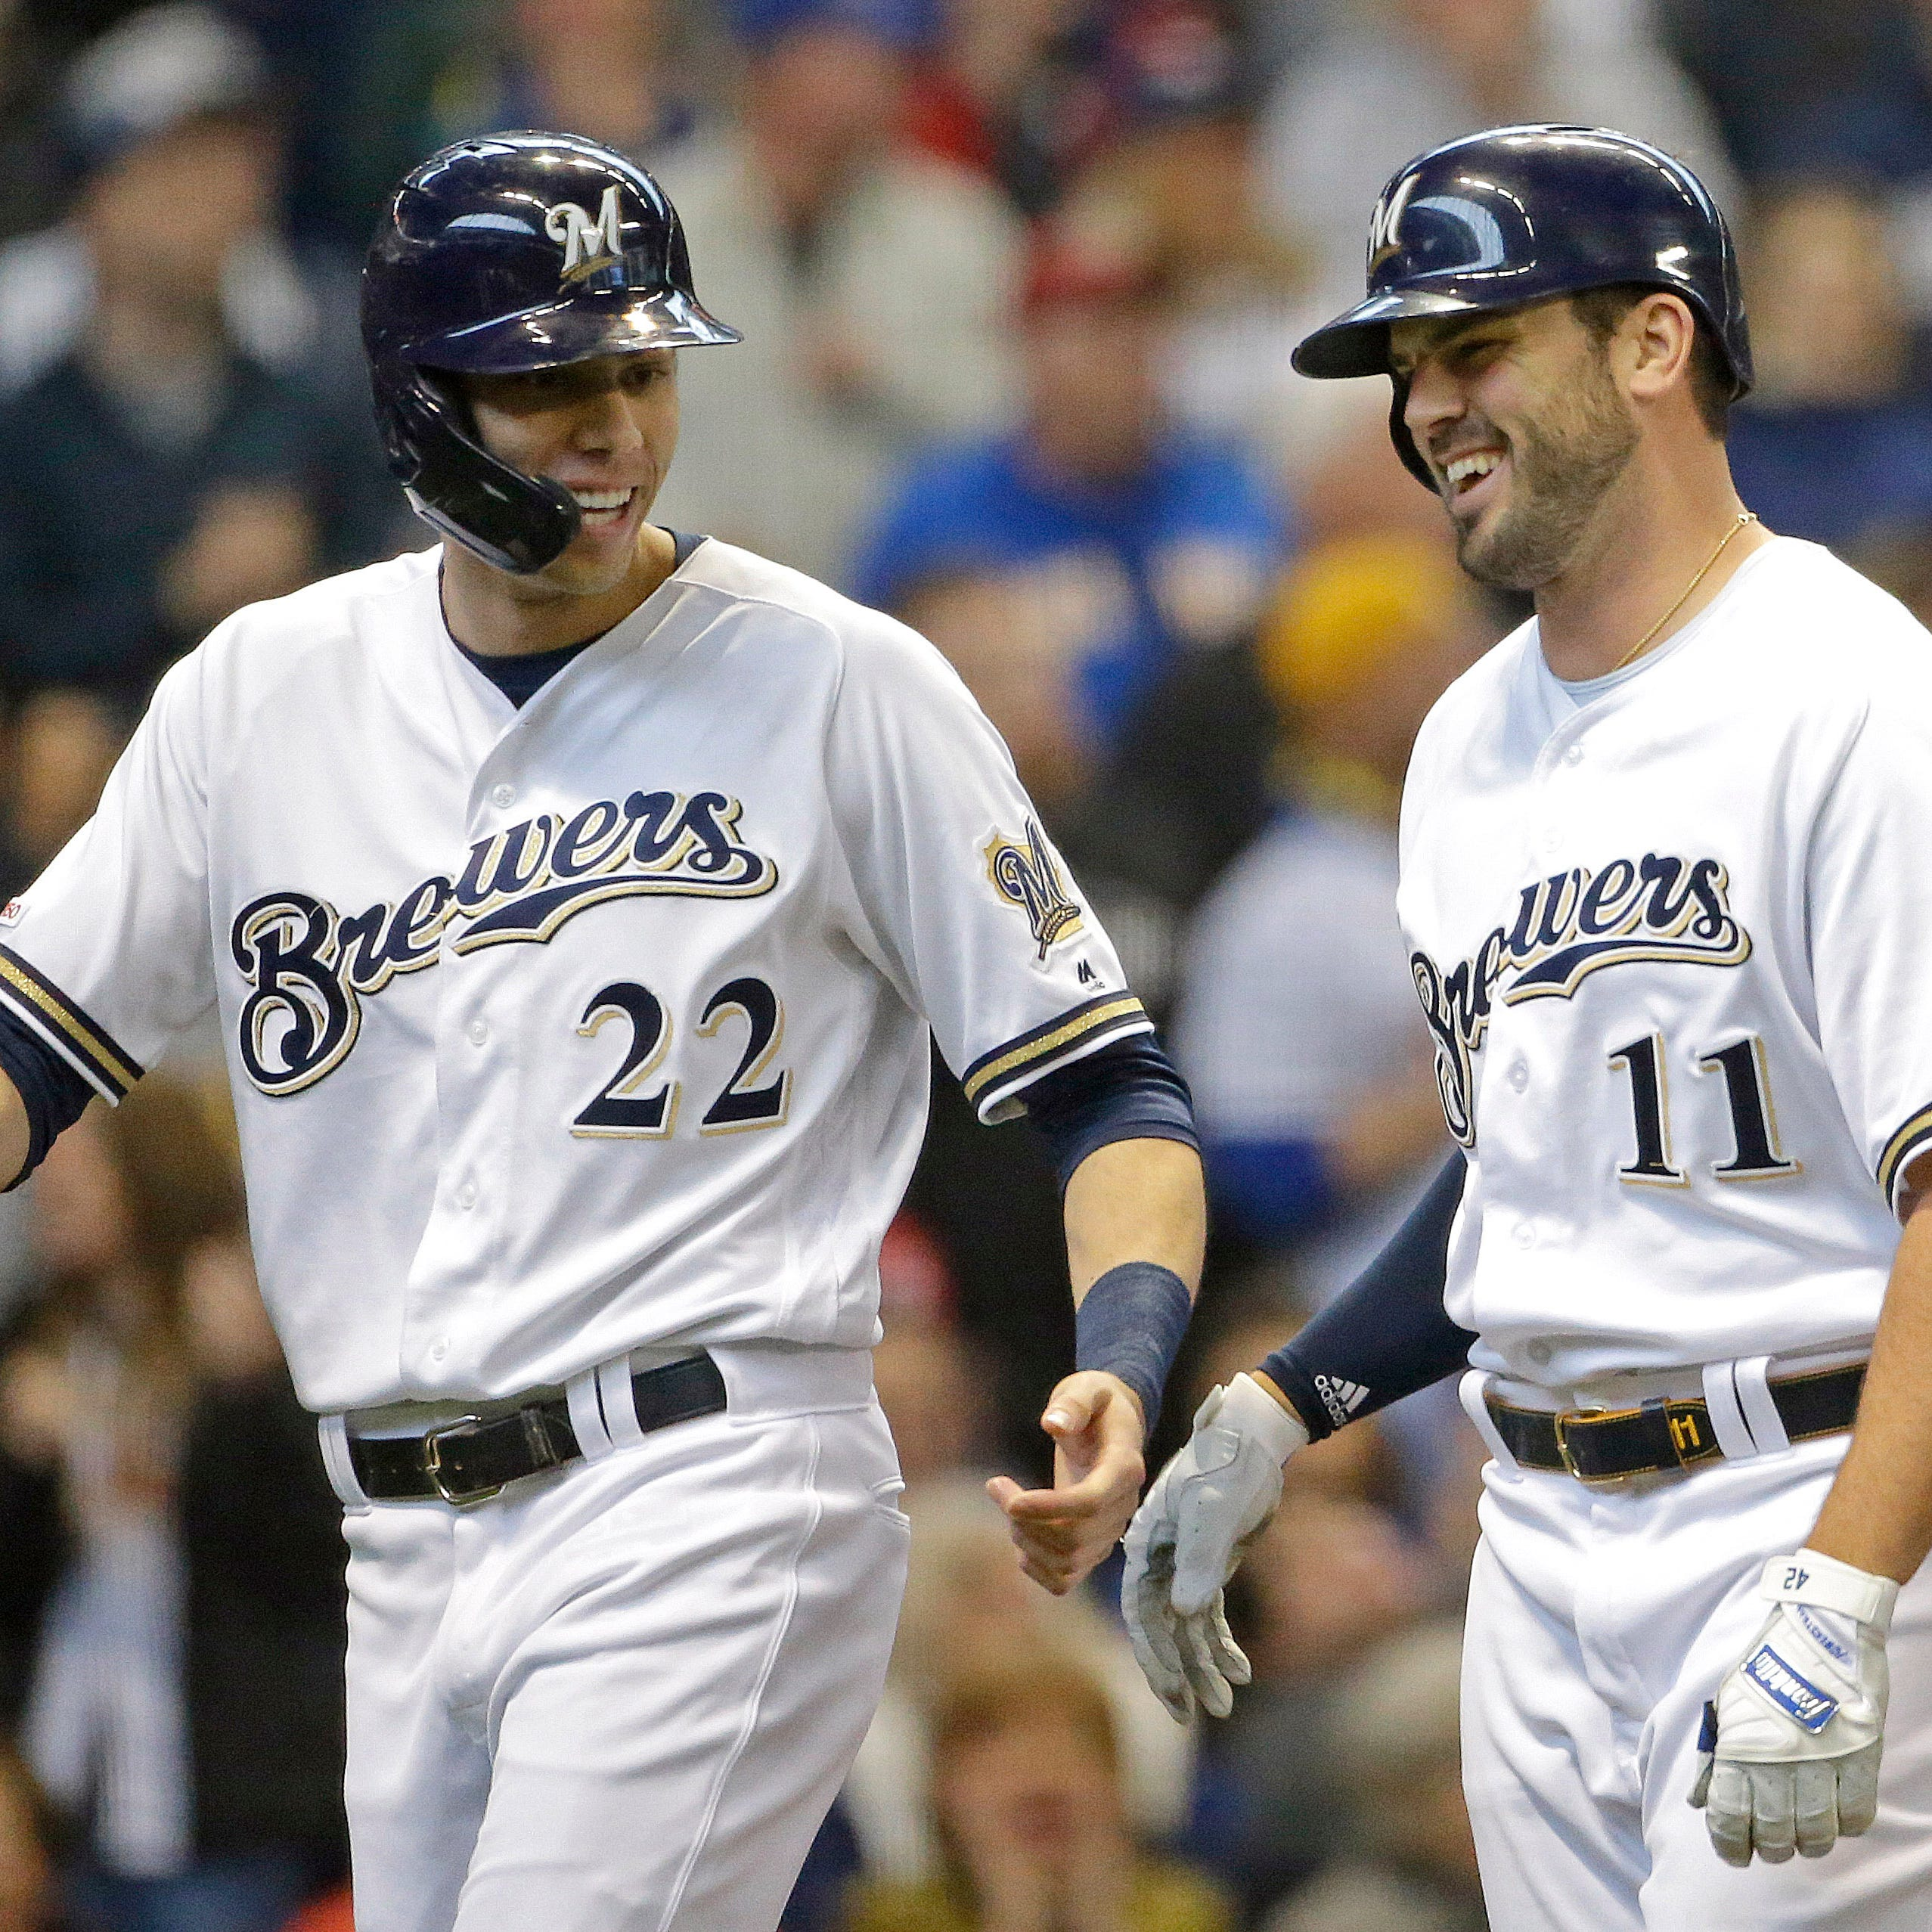 A daunting trip awaits, but the Brewers took advantage of the competition to get hot in time